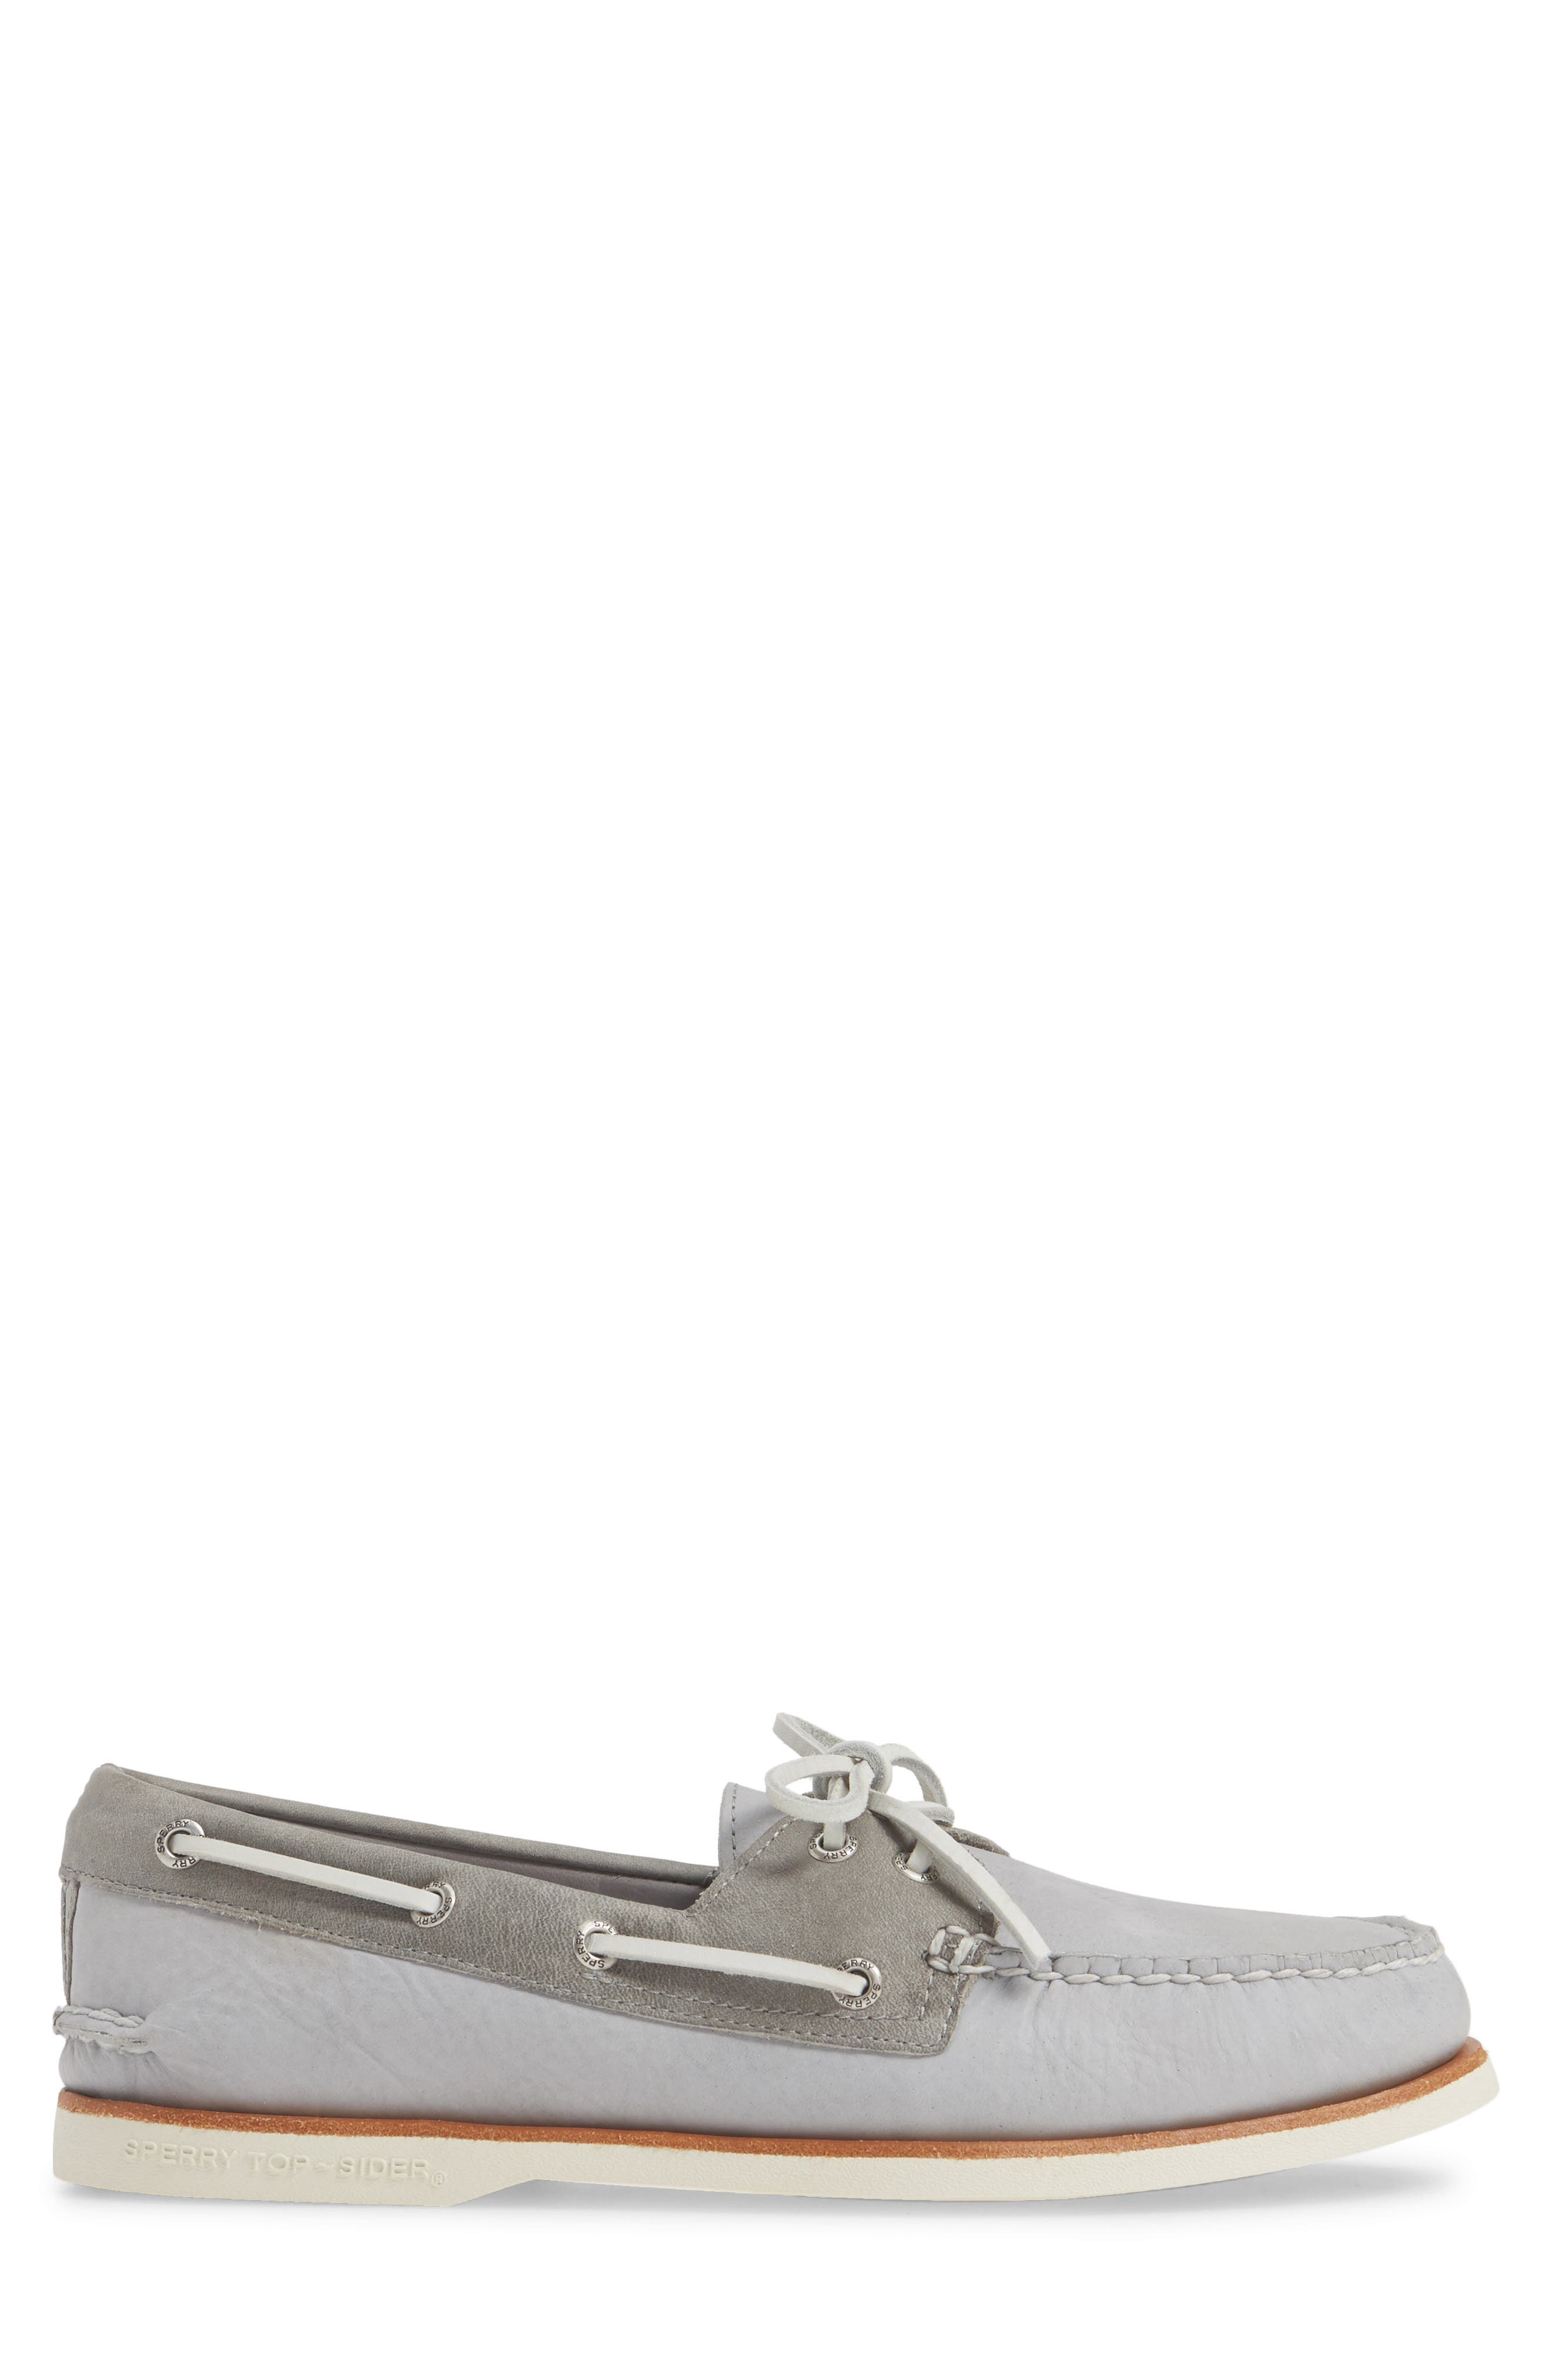 SPERRY, 'Gold Cup - Authentic Original' Boat Shoe, Alternate thumbnail 3, color, GREY/GREY LEATHER